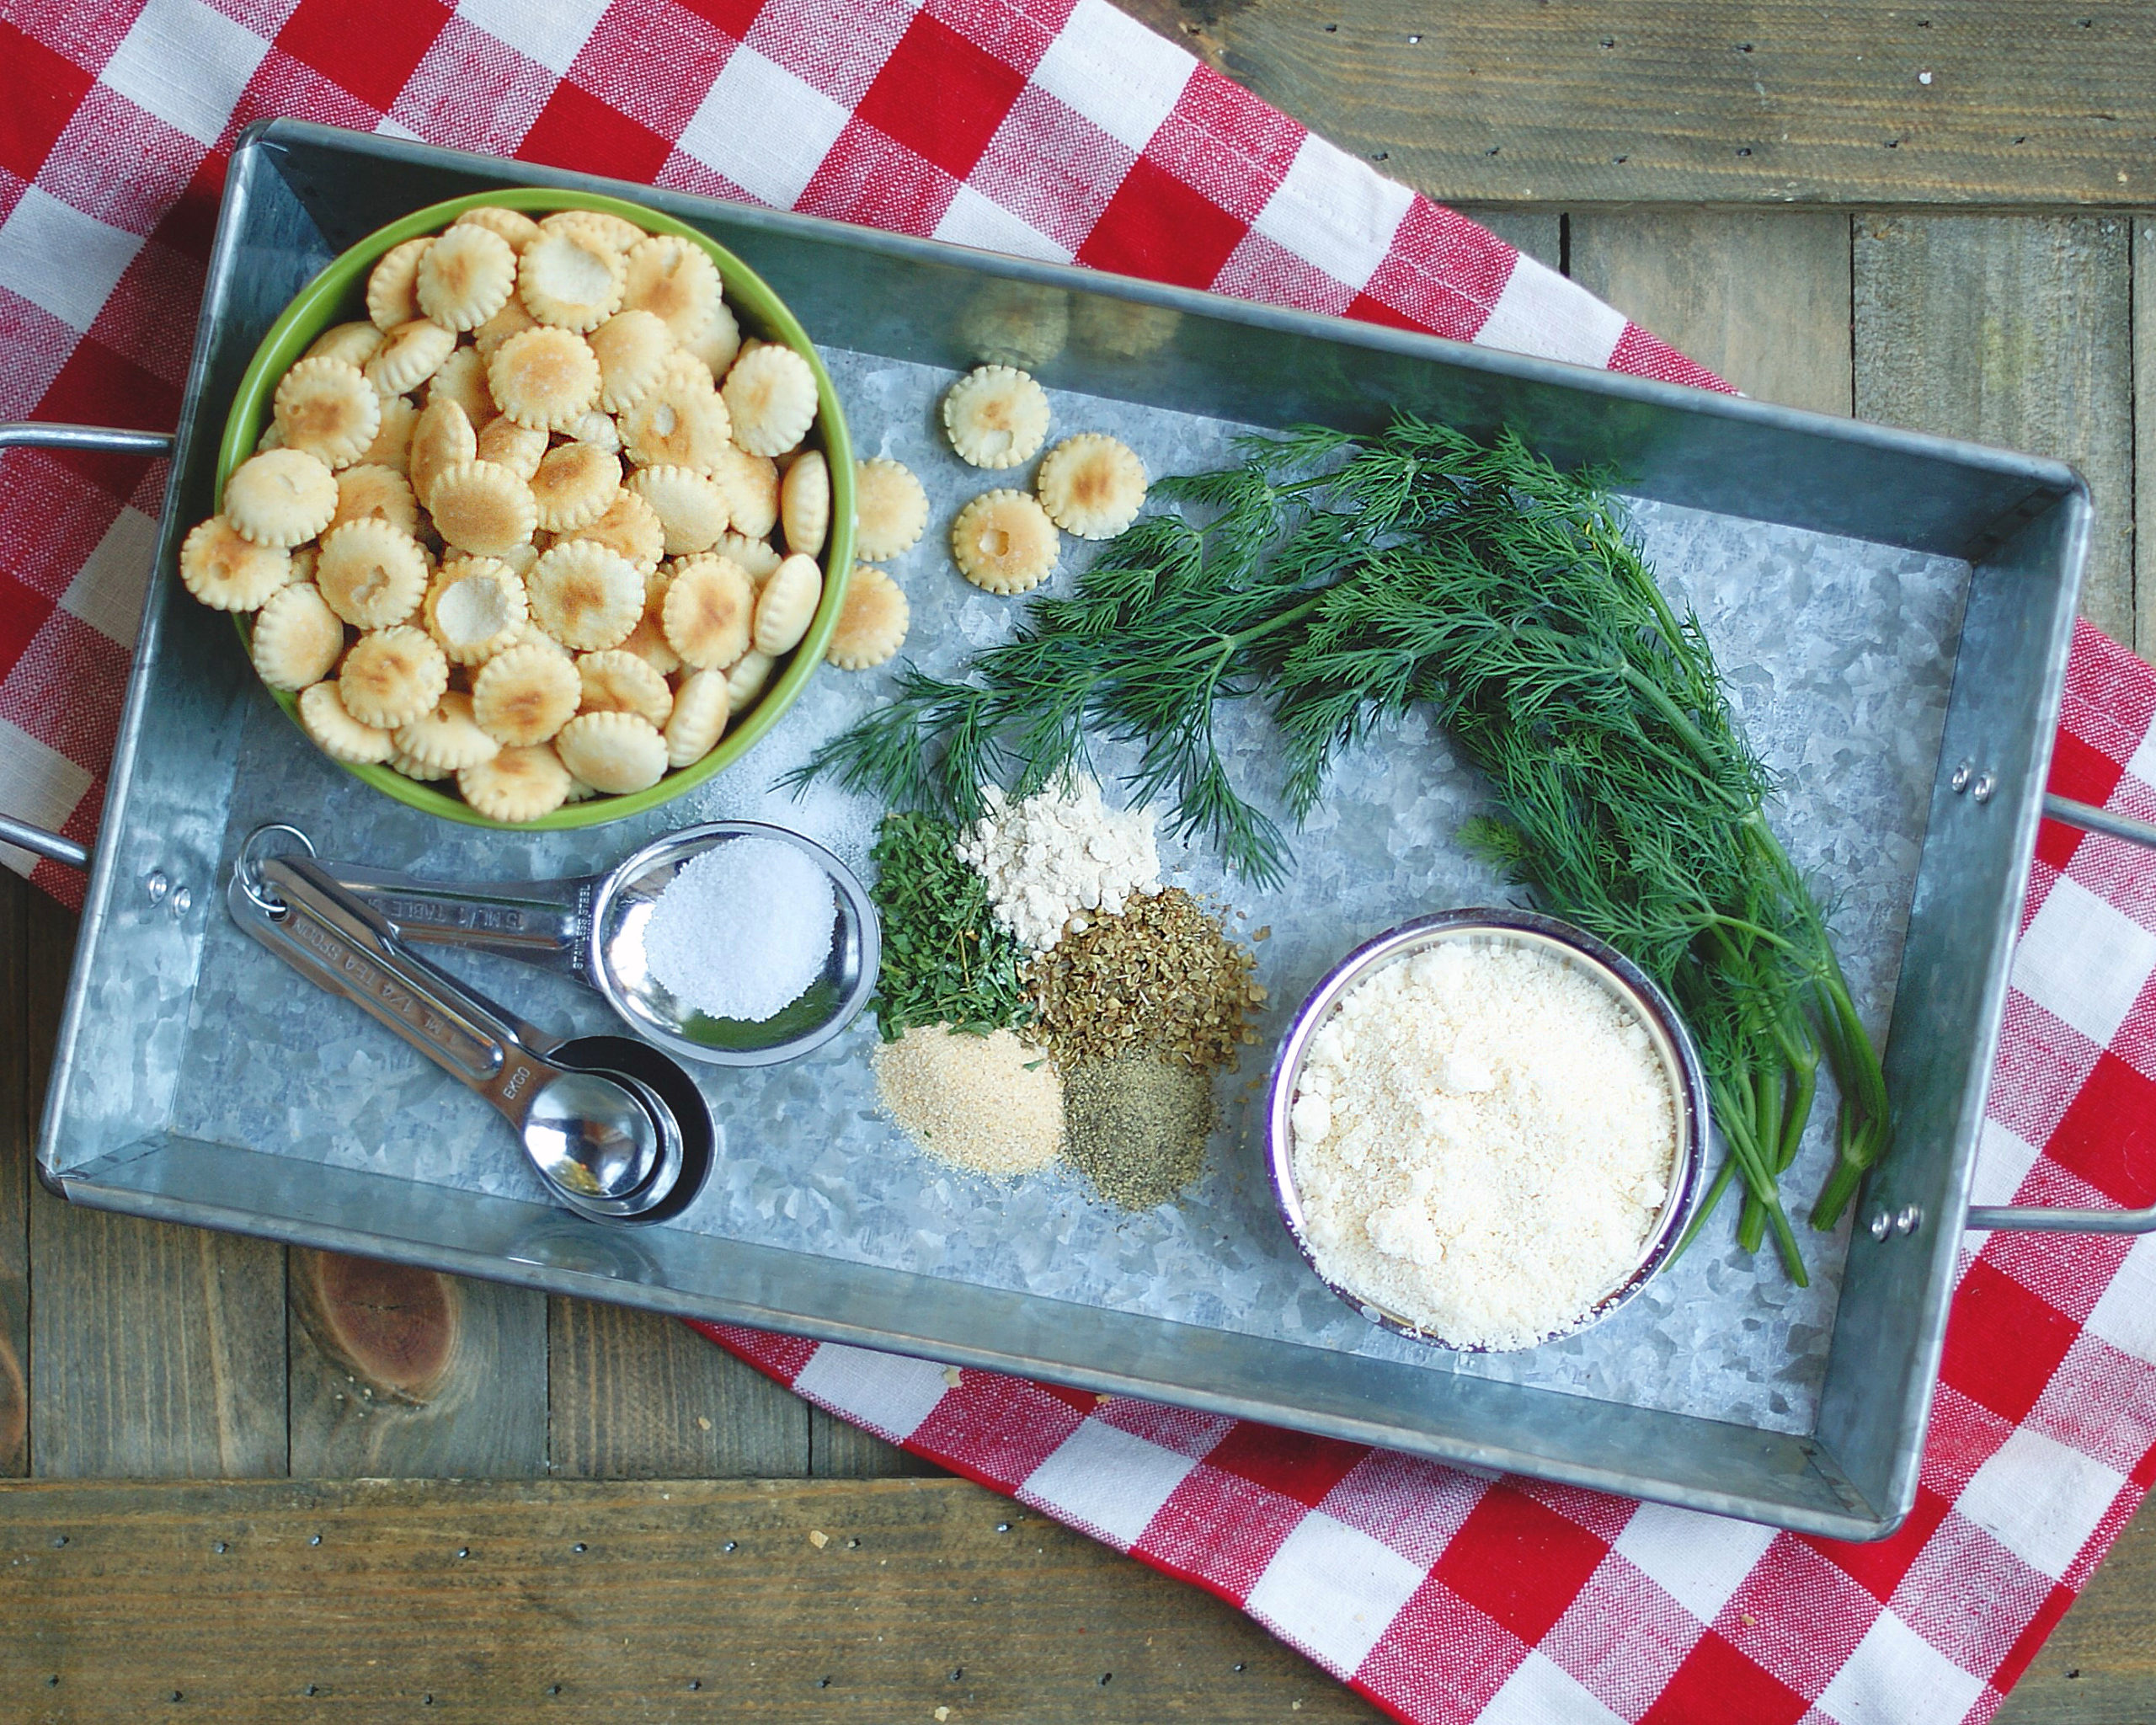 Ingredients for Dill Ranch oyster crackers.